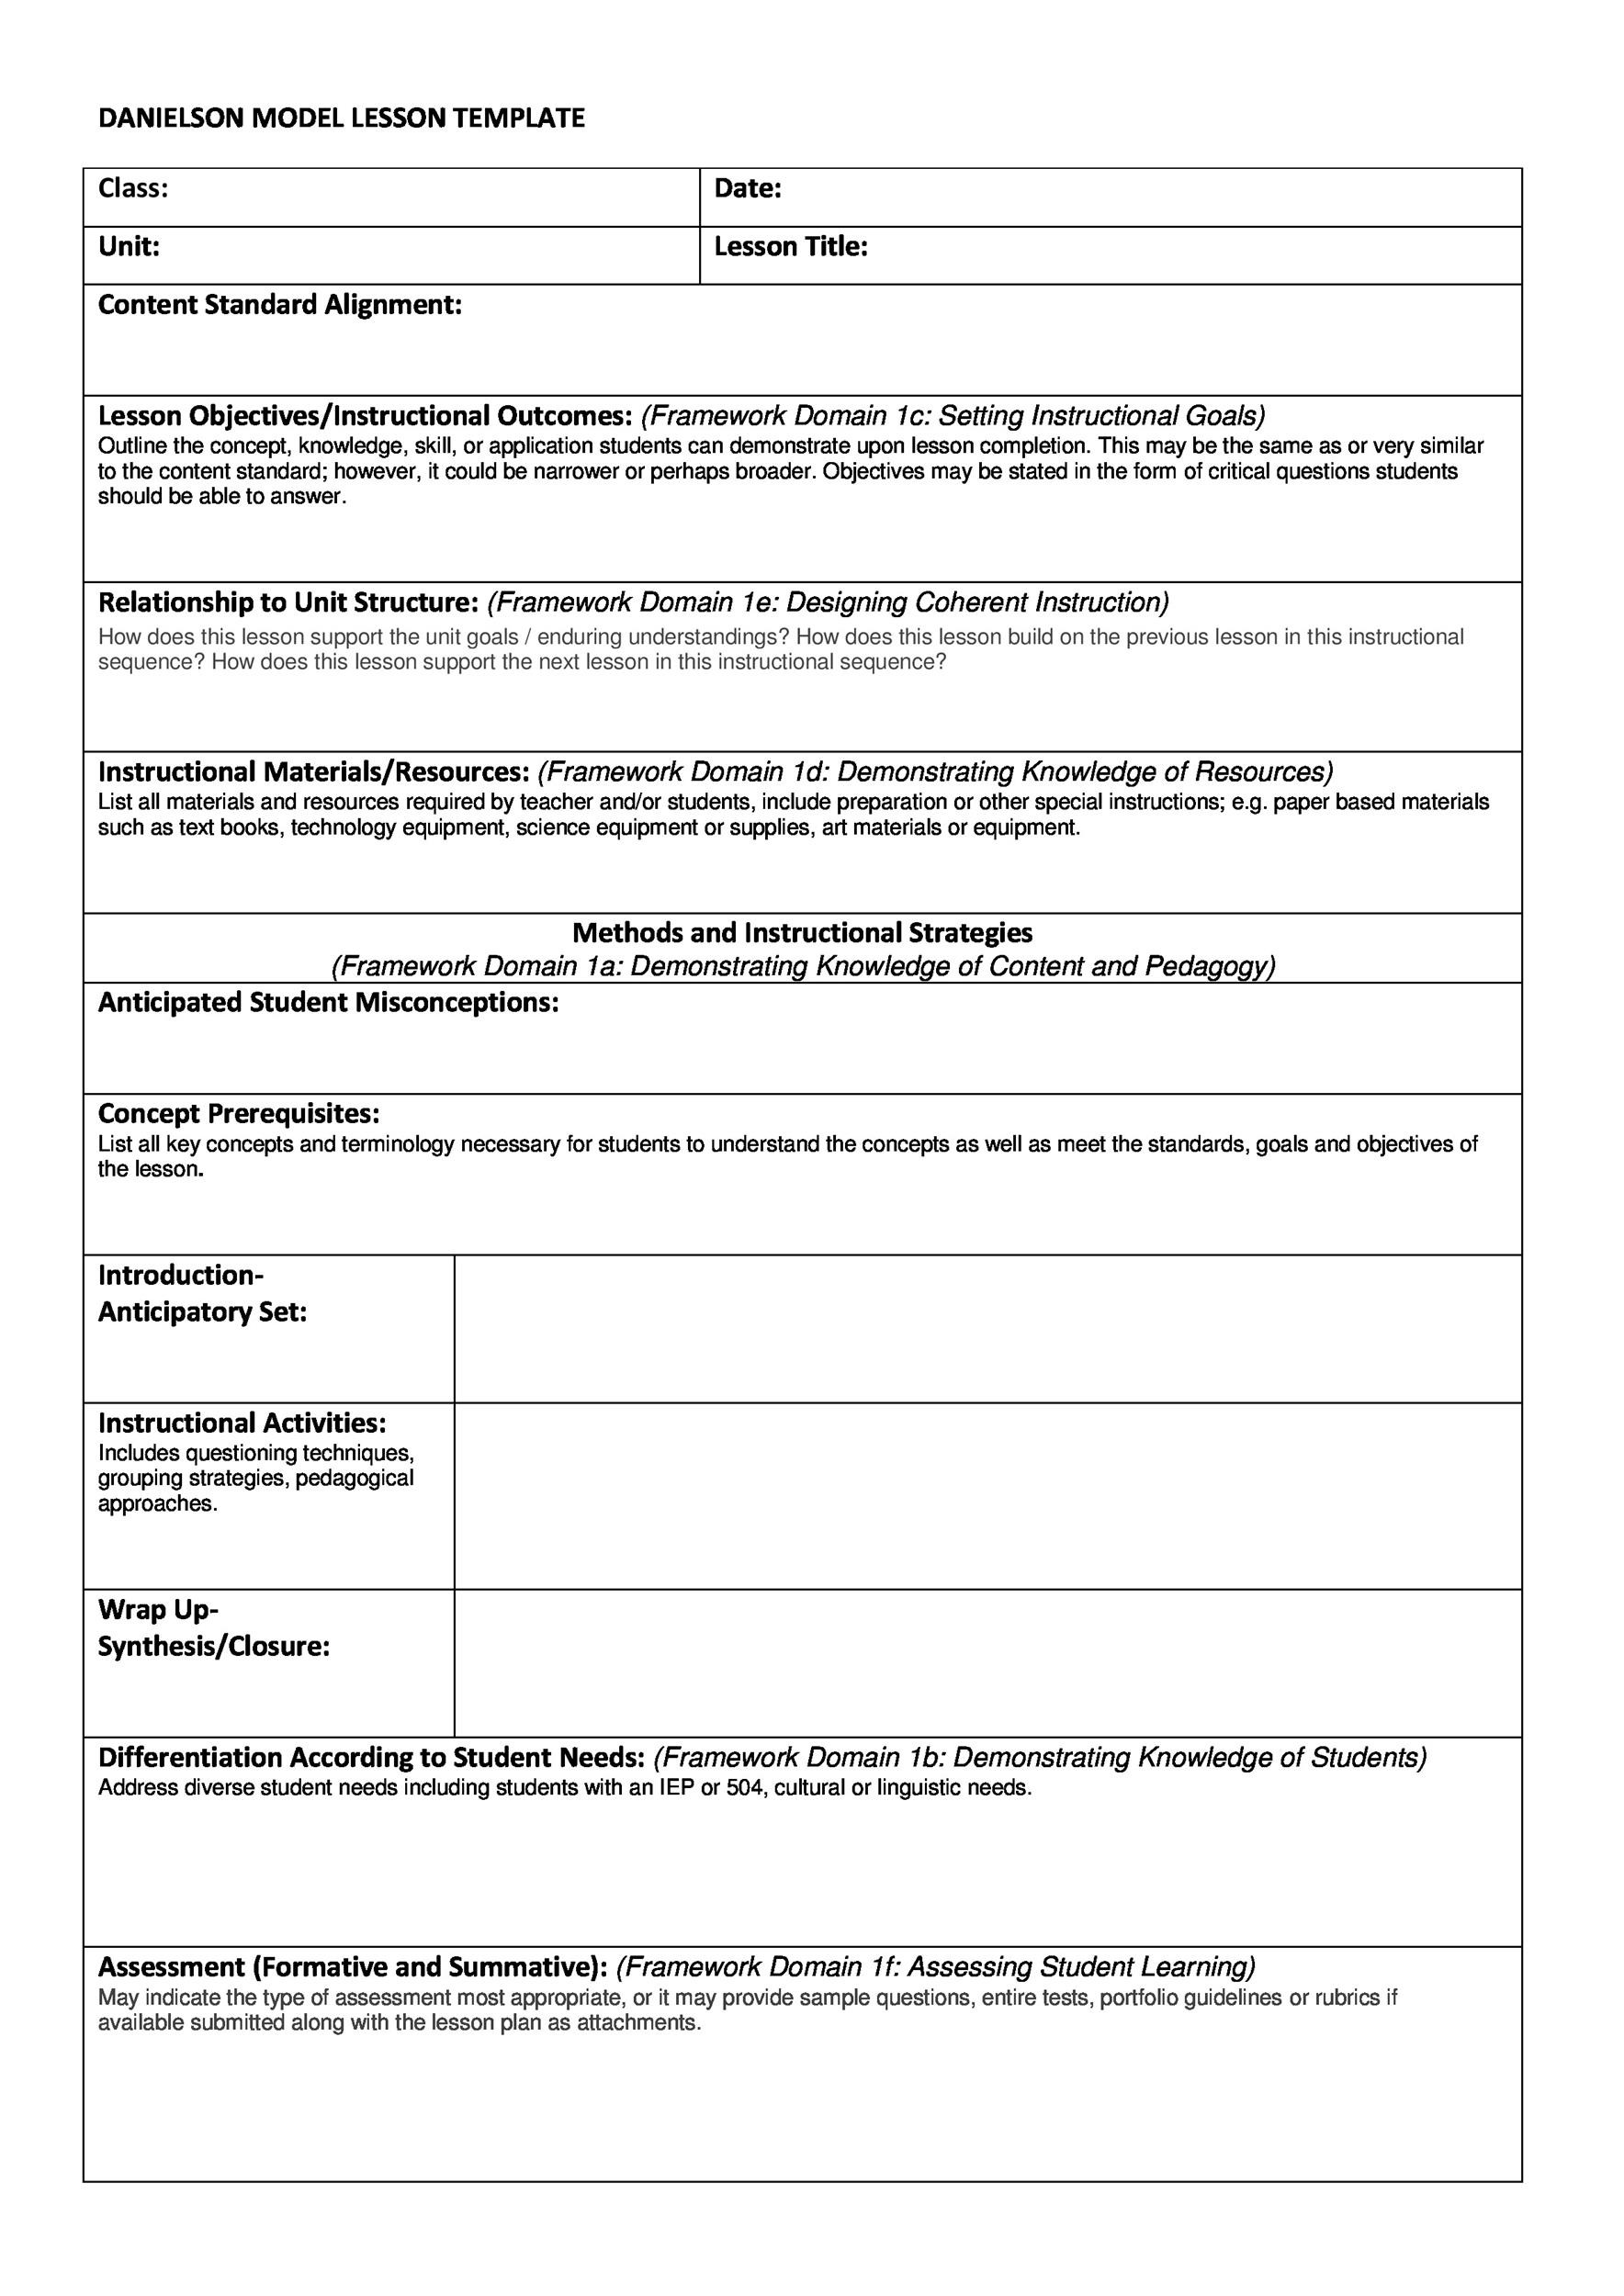 44 Free Lesson Plan Templates [common Core, Preschool, Weekly]. Proper Format For A Letter Template. Weekly Planner For Teachers Template. Sample Police Cover Letters Template. Online Resume Builder Reviews Template. Time Management Schedule Maker Template. Short And Long Term Goals Examples For It Career Template. Loan Processor Resume Example. Resume Sample Word Doc Template